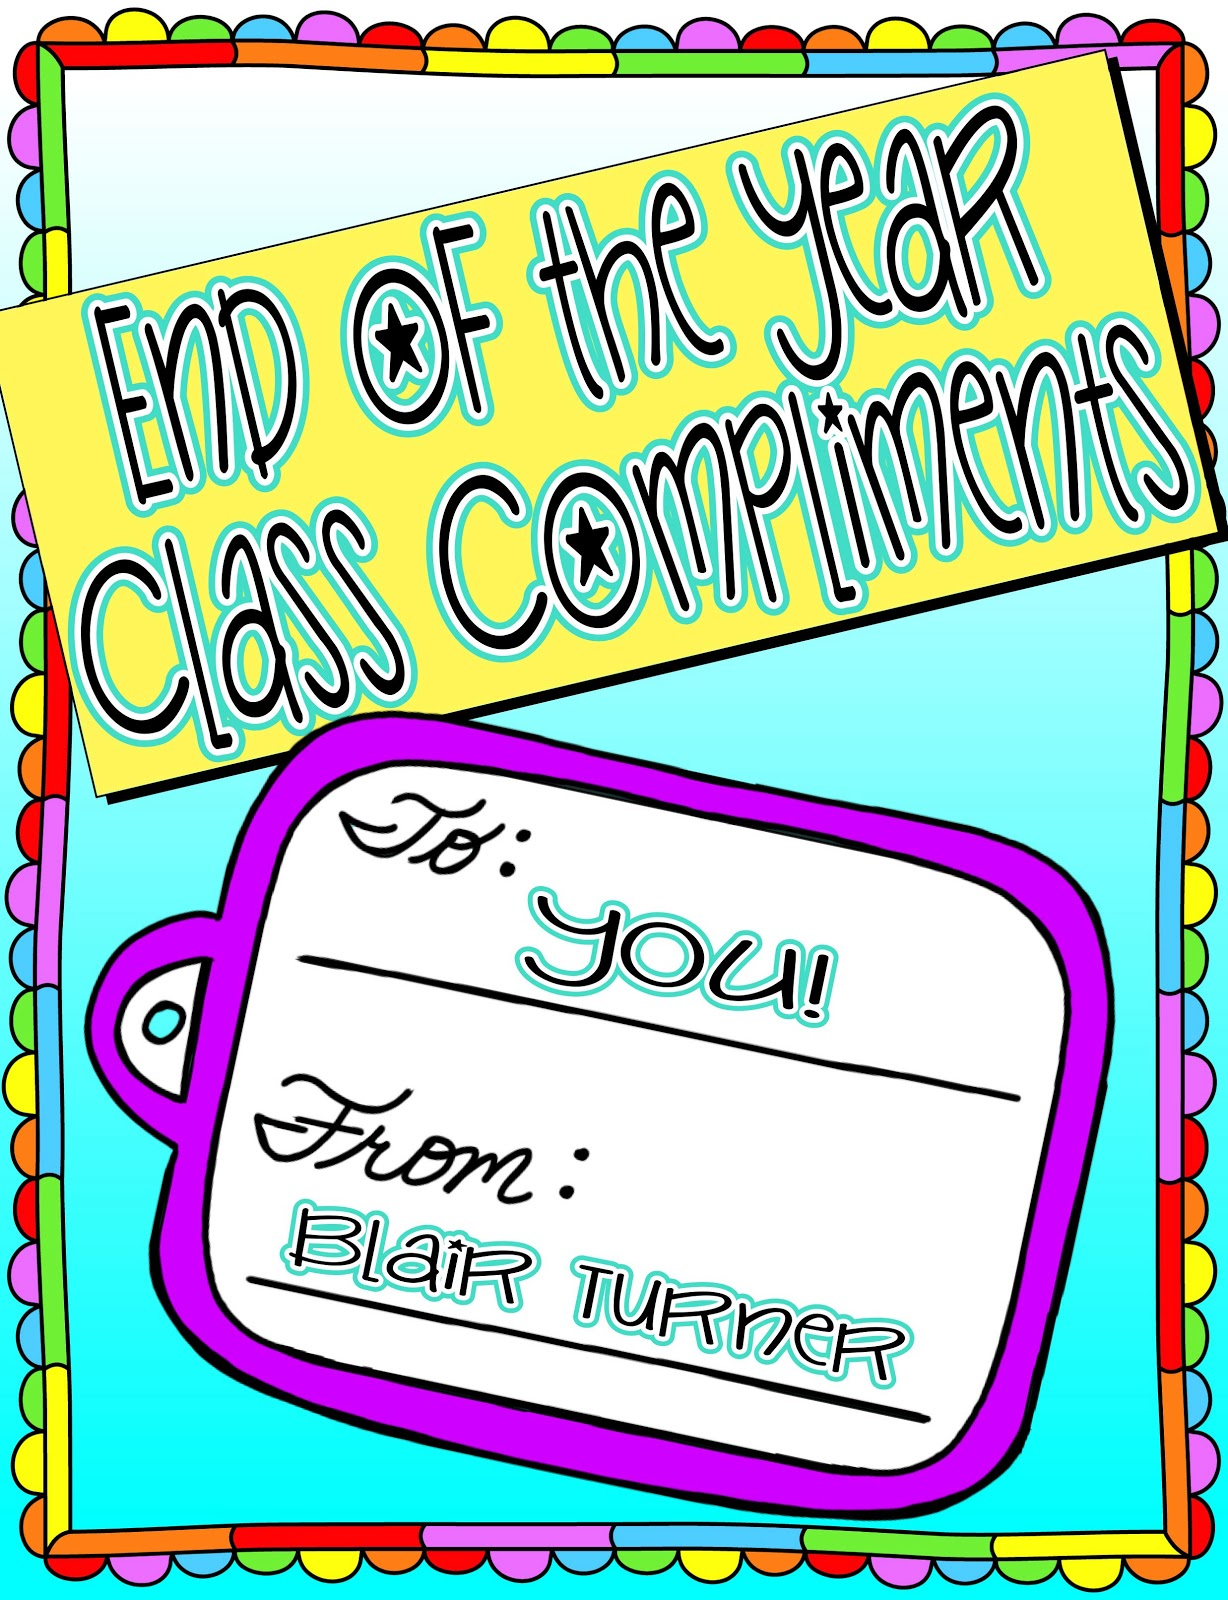 school year clipart - photo #25